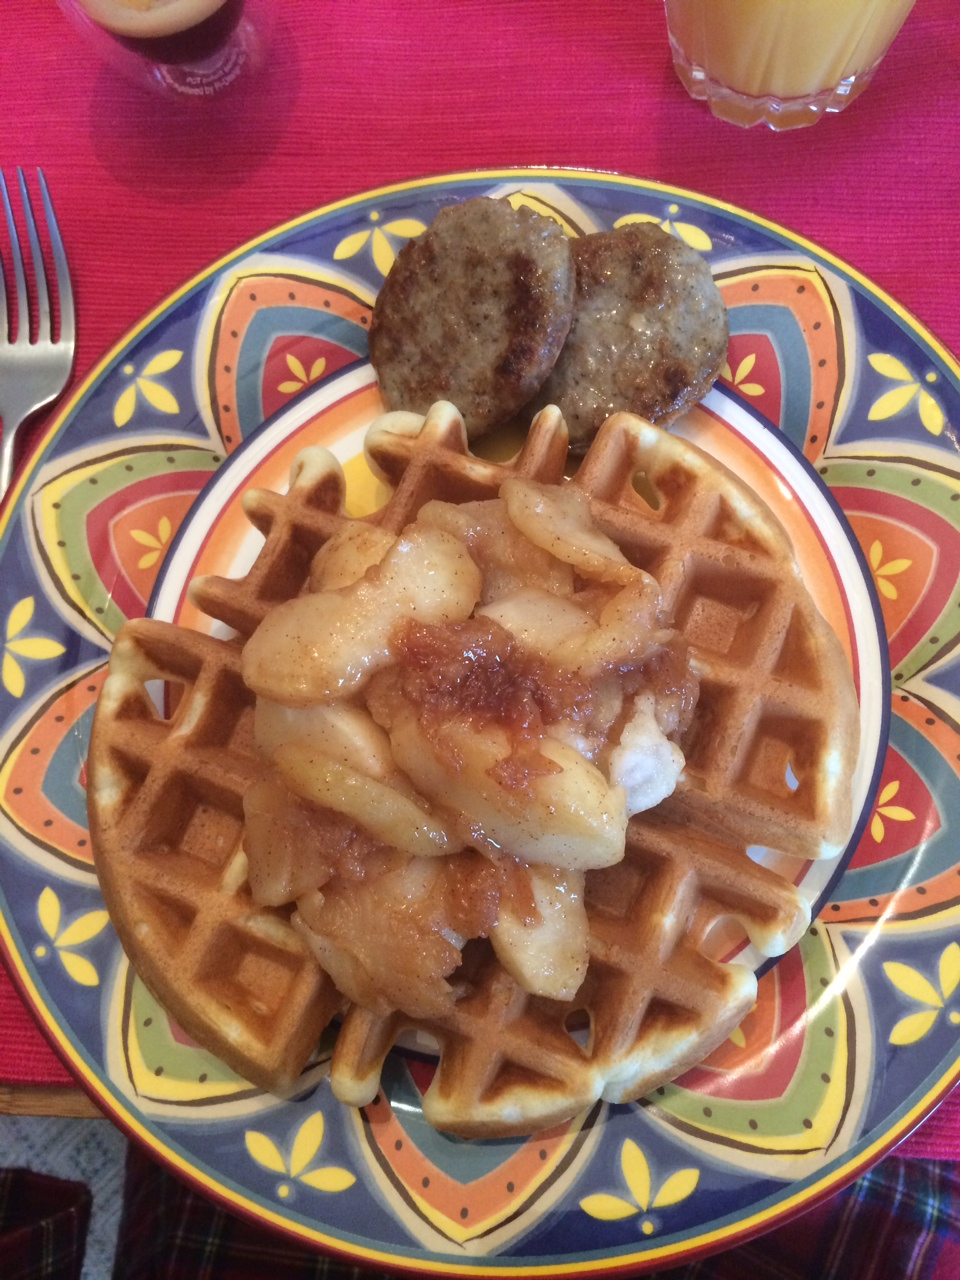 Farm Breakfast - Waffle, Apple Reduction, Sausage Patties